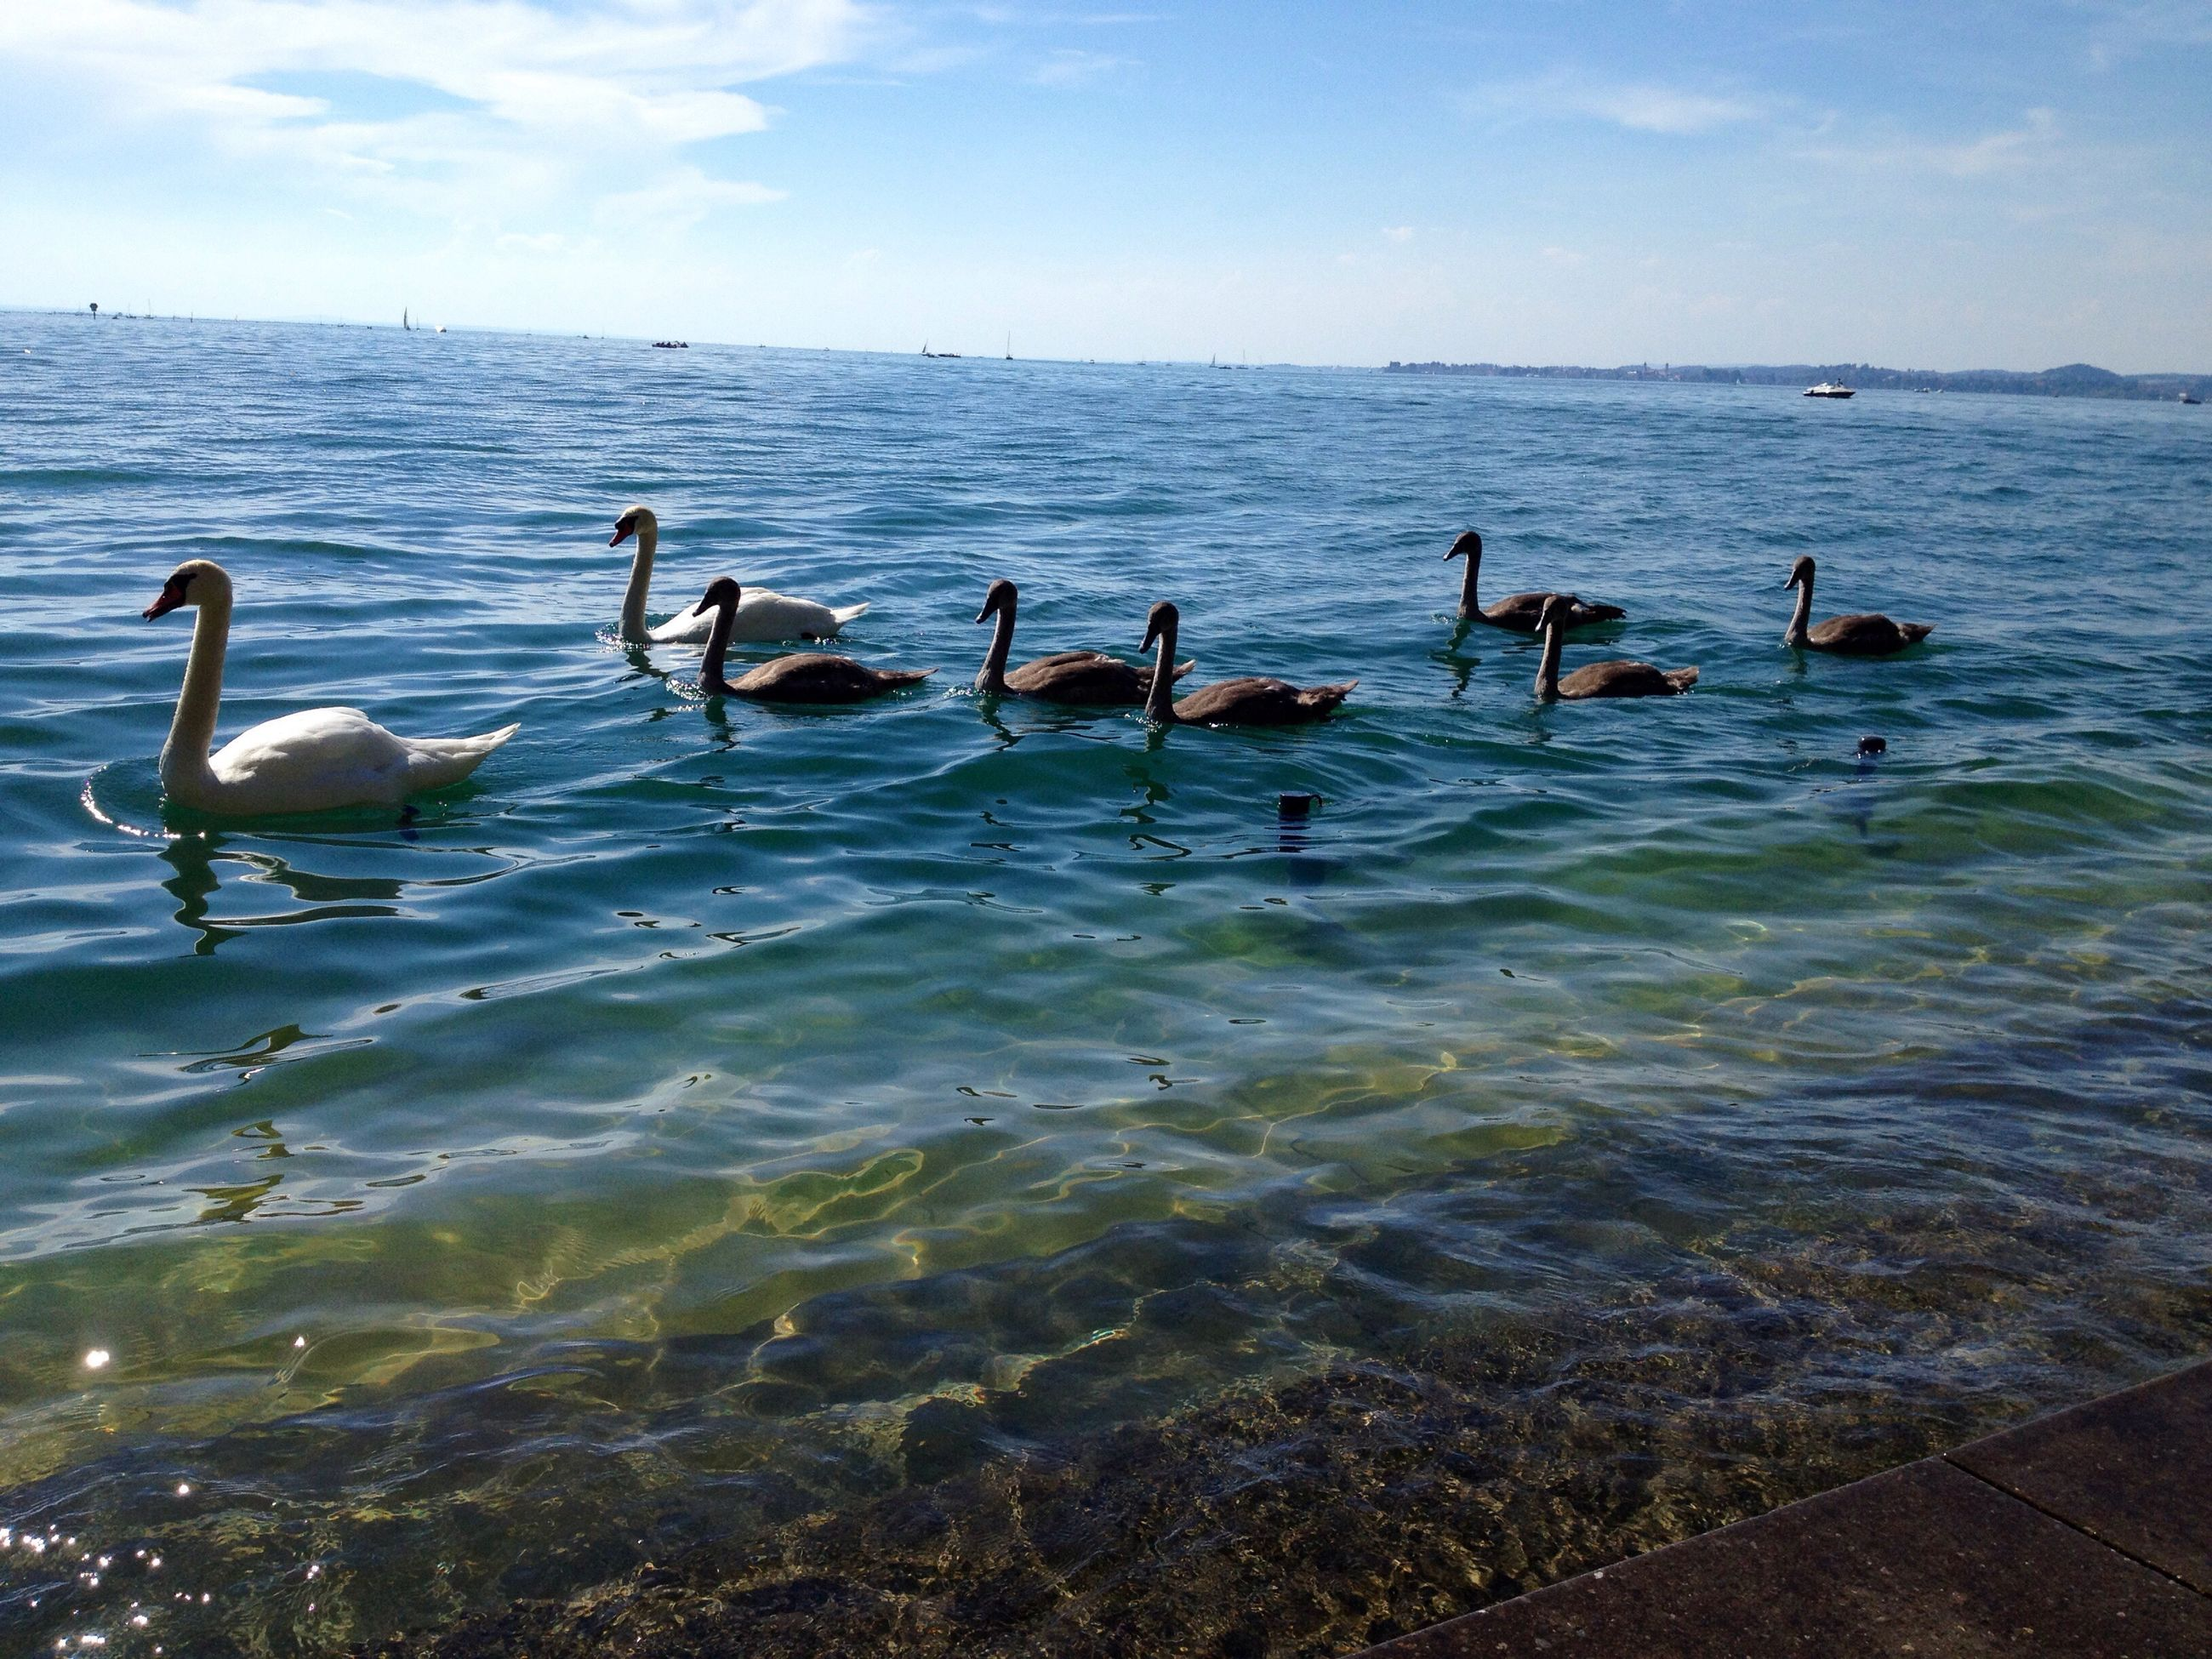 bird, water, animal themes, animals in the wild, large group of animals, sea, sky, animal wildlife, nature, beauty in nature, outdoors, swimming, flock of birds, day, water bird, scenics, no people, canada goose, perching